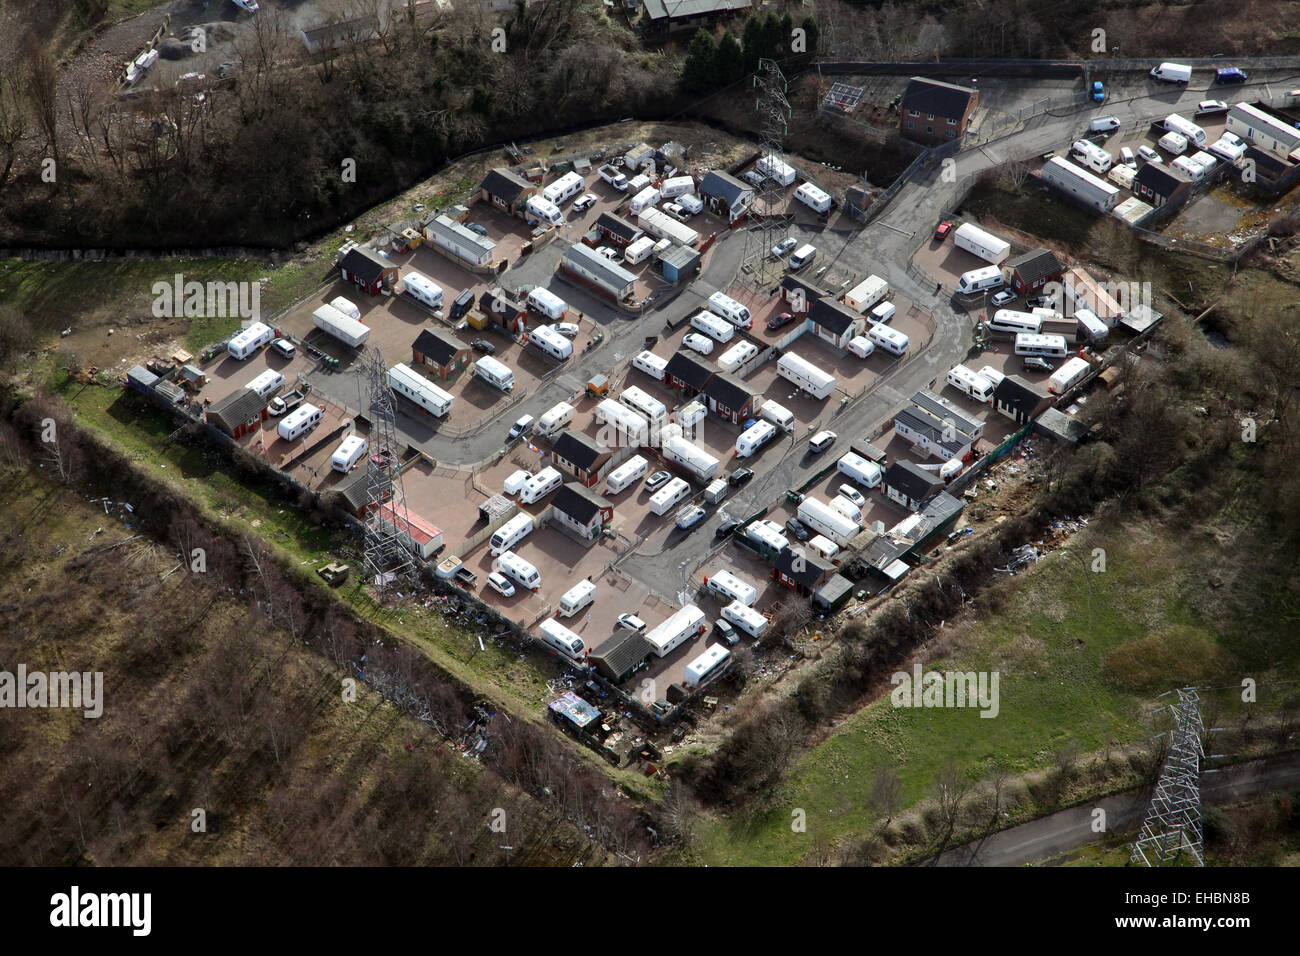 aerial view of a gypsy campsite caravan site in West Yorkshire, UK - Stock Image